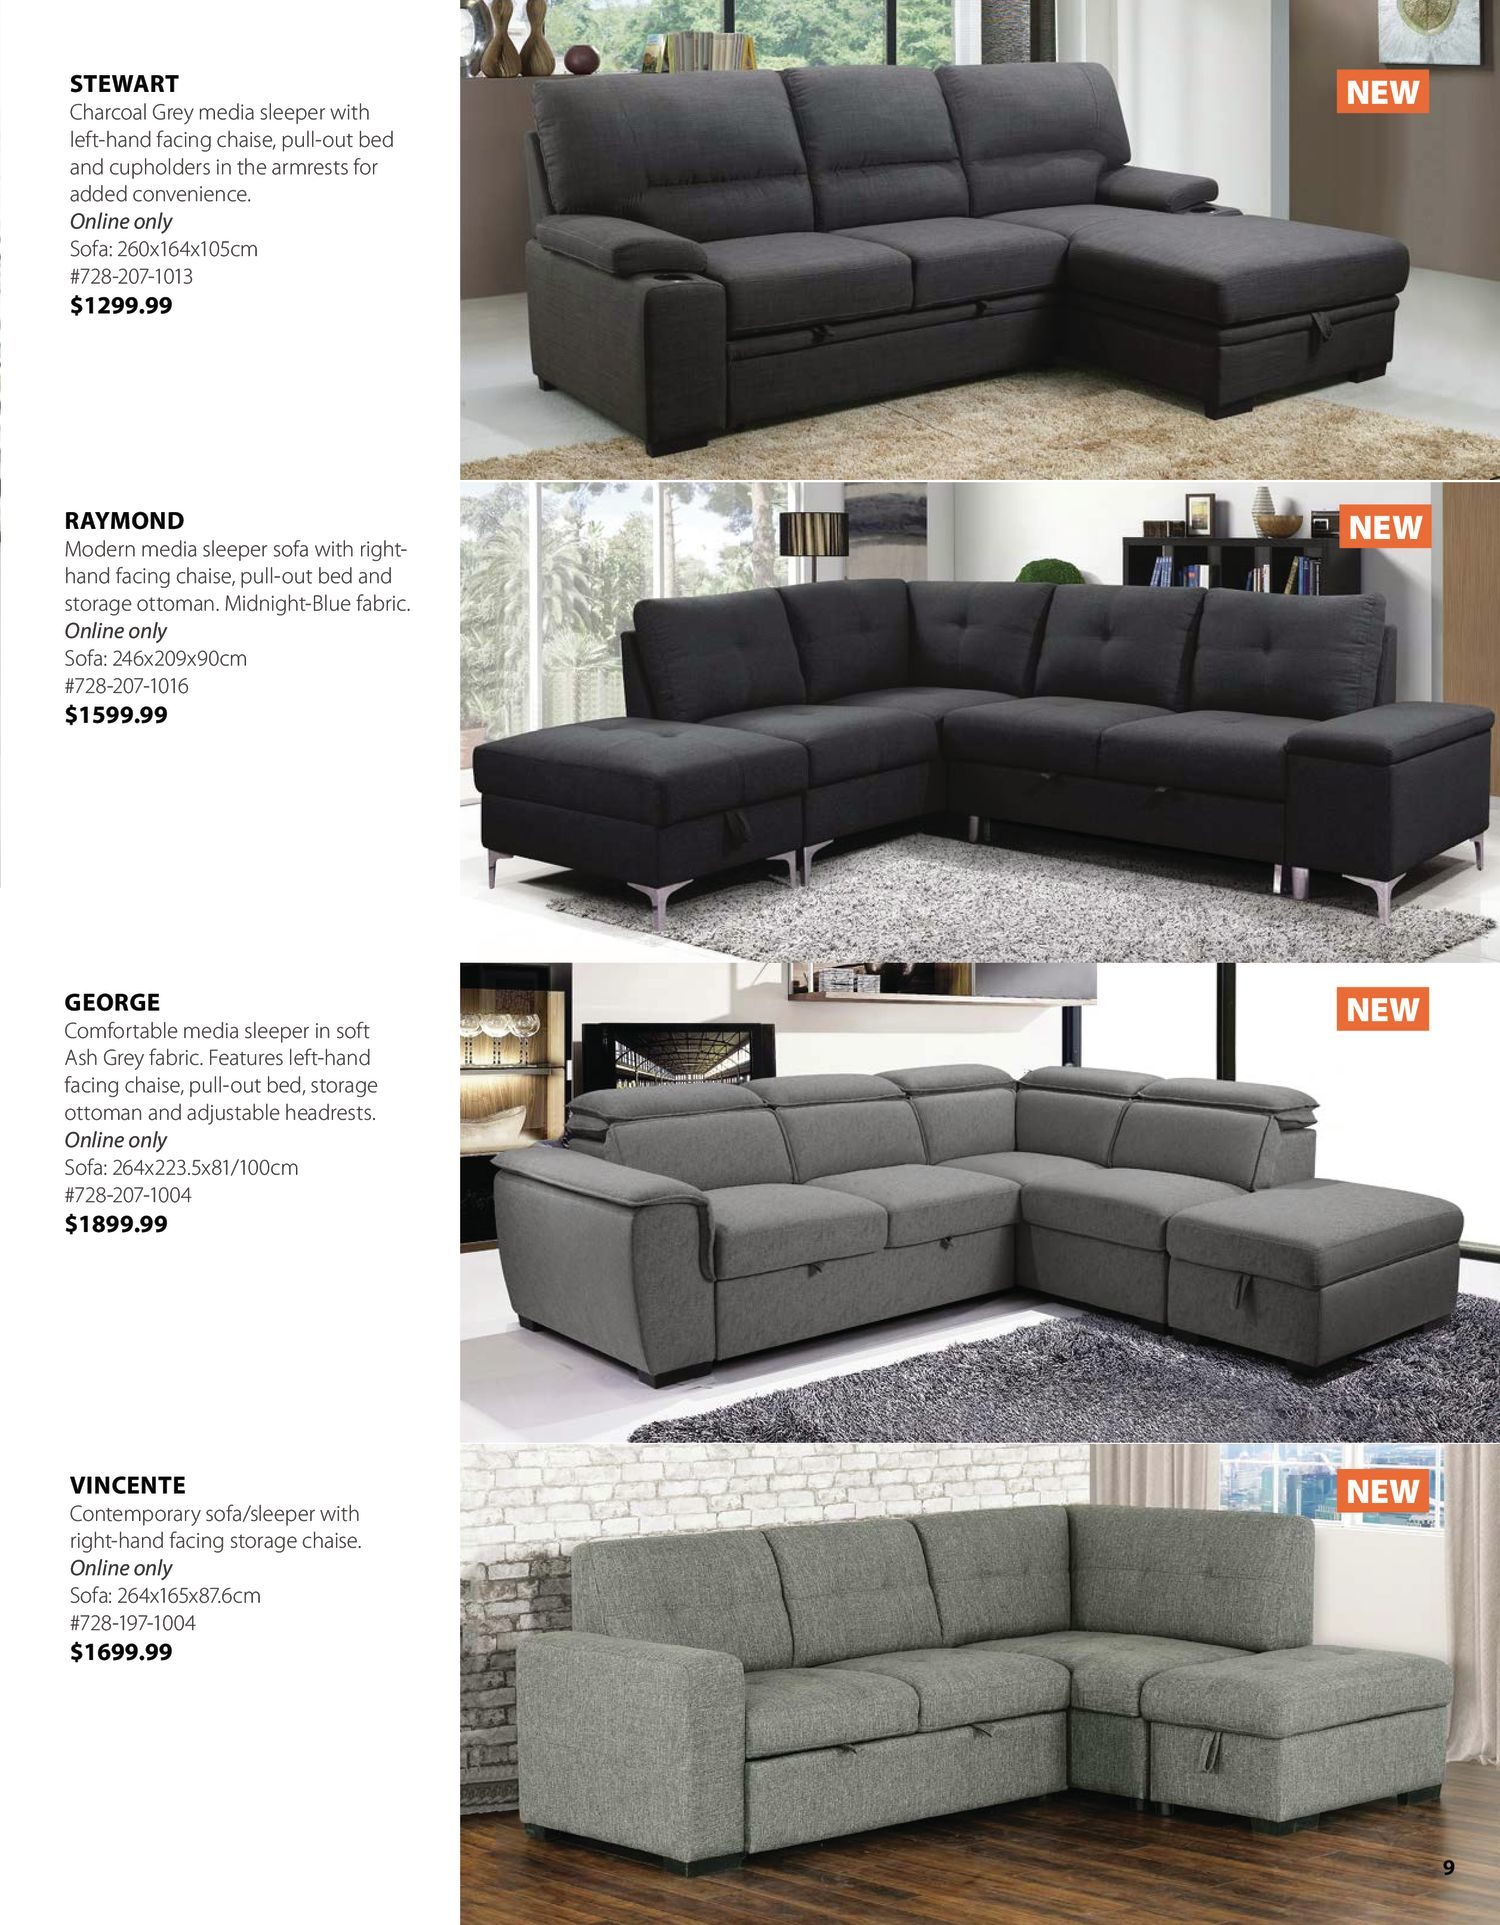 Jysk - Furniture Catalogue - Be Inspired - Page 9